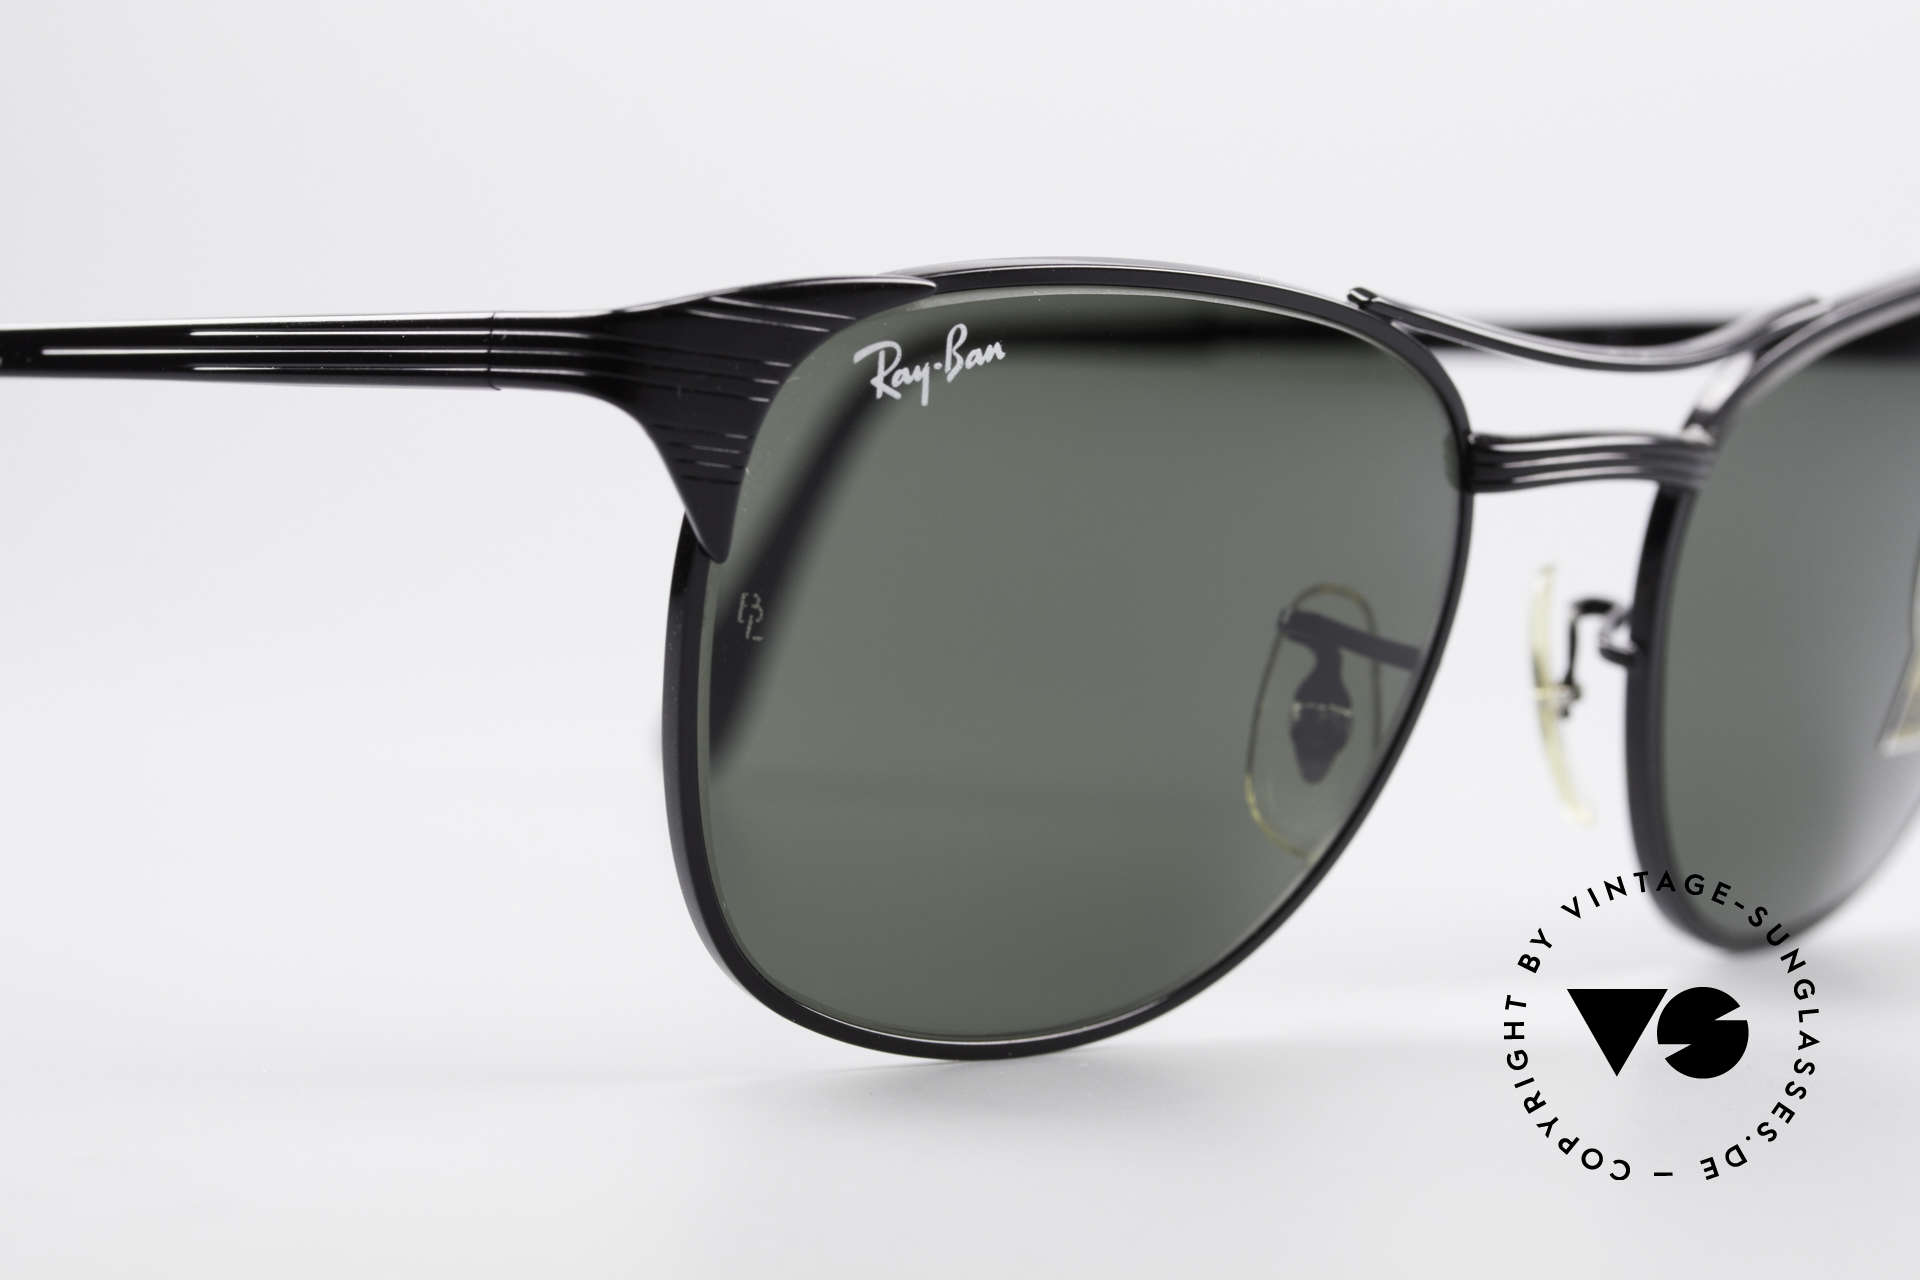 Ray Ban Signet Old USA B&L Ray-Ban Shades, solid BLACK frame with double bridge, W0387, Made for Men